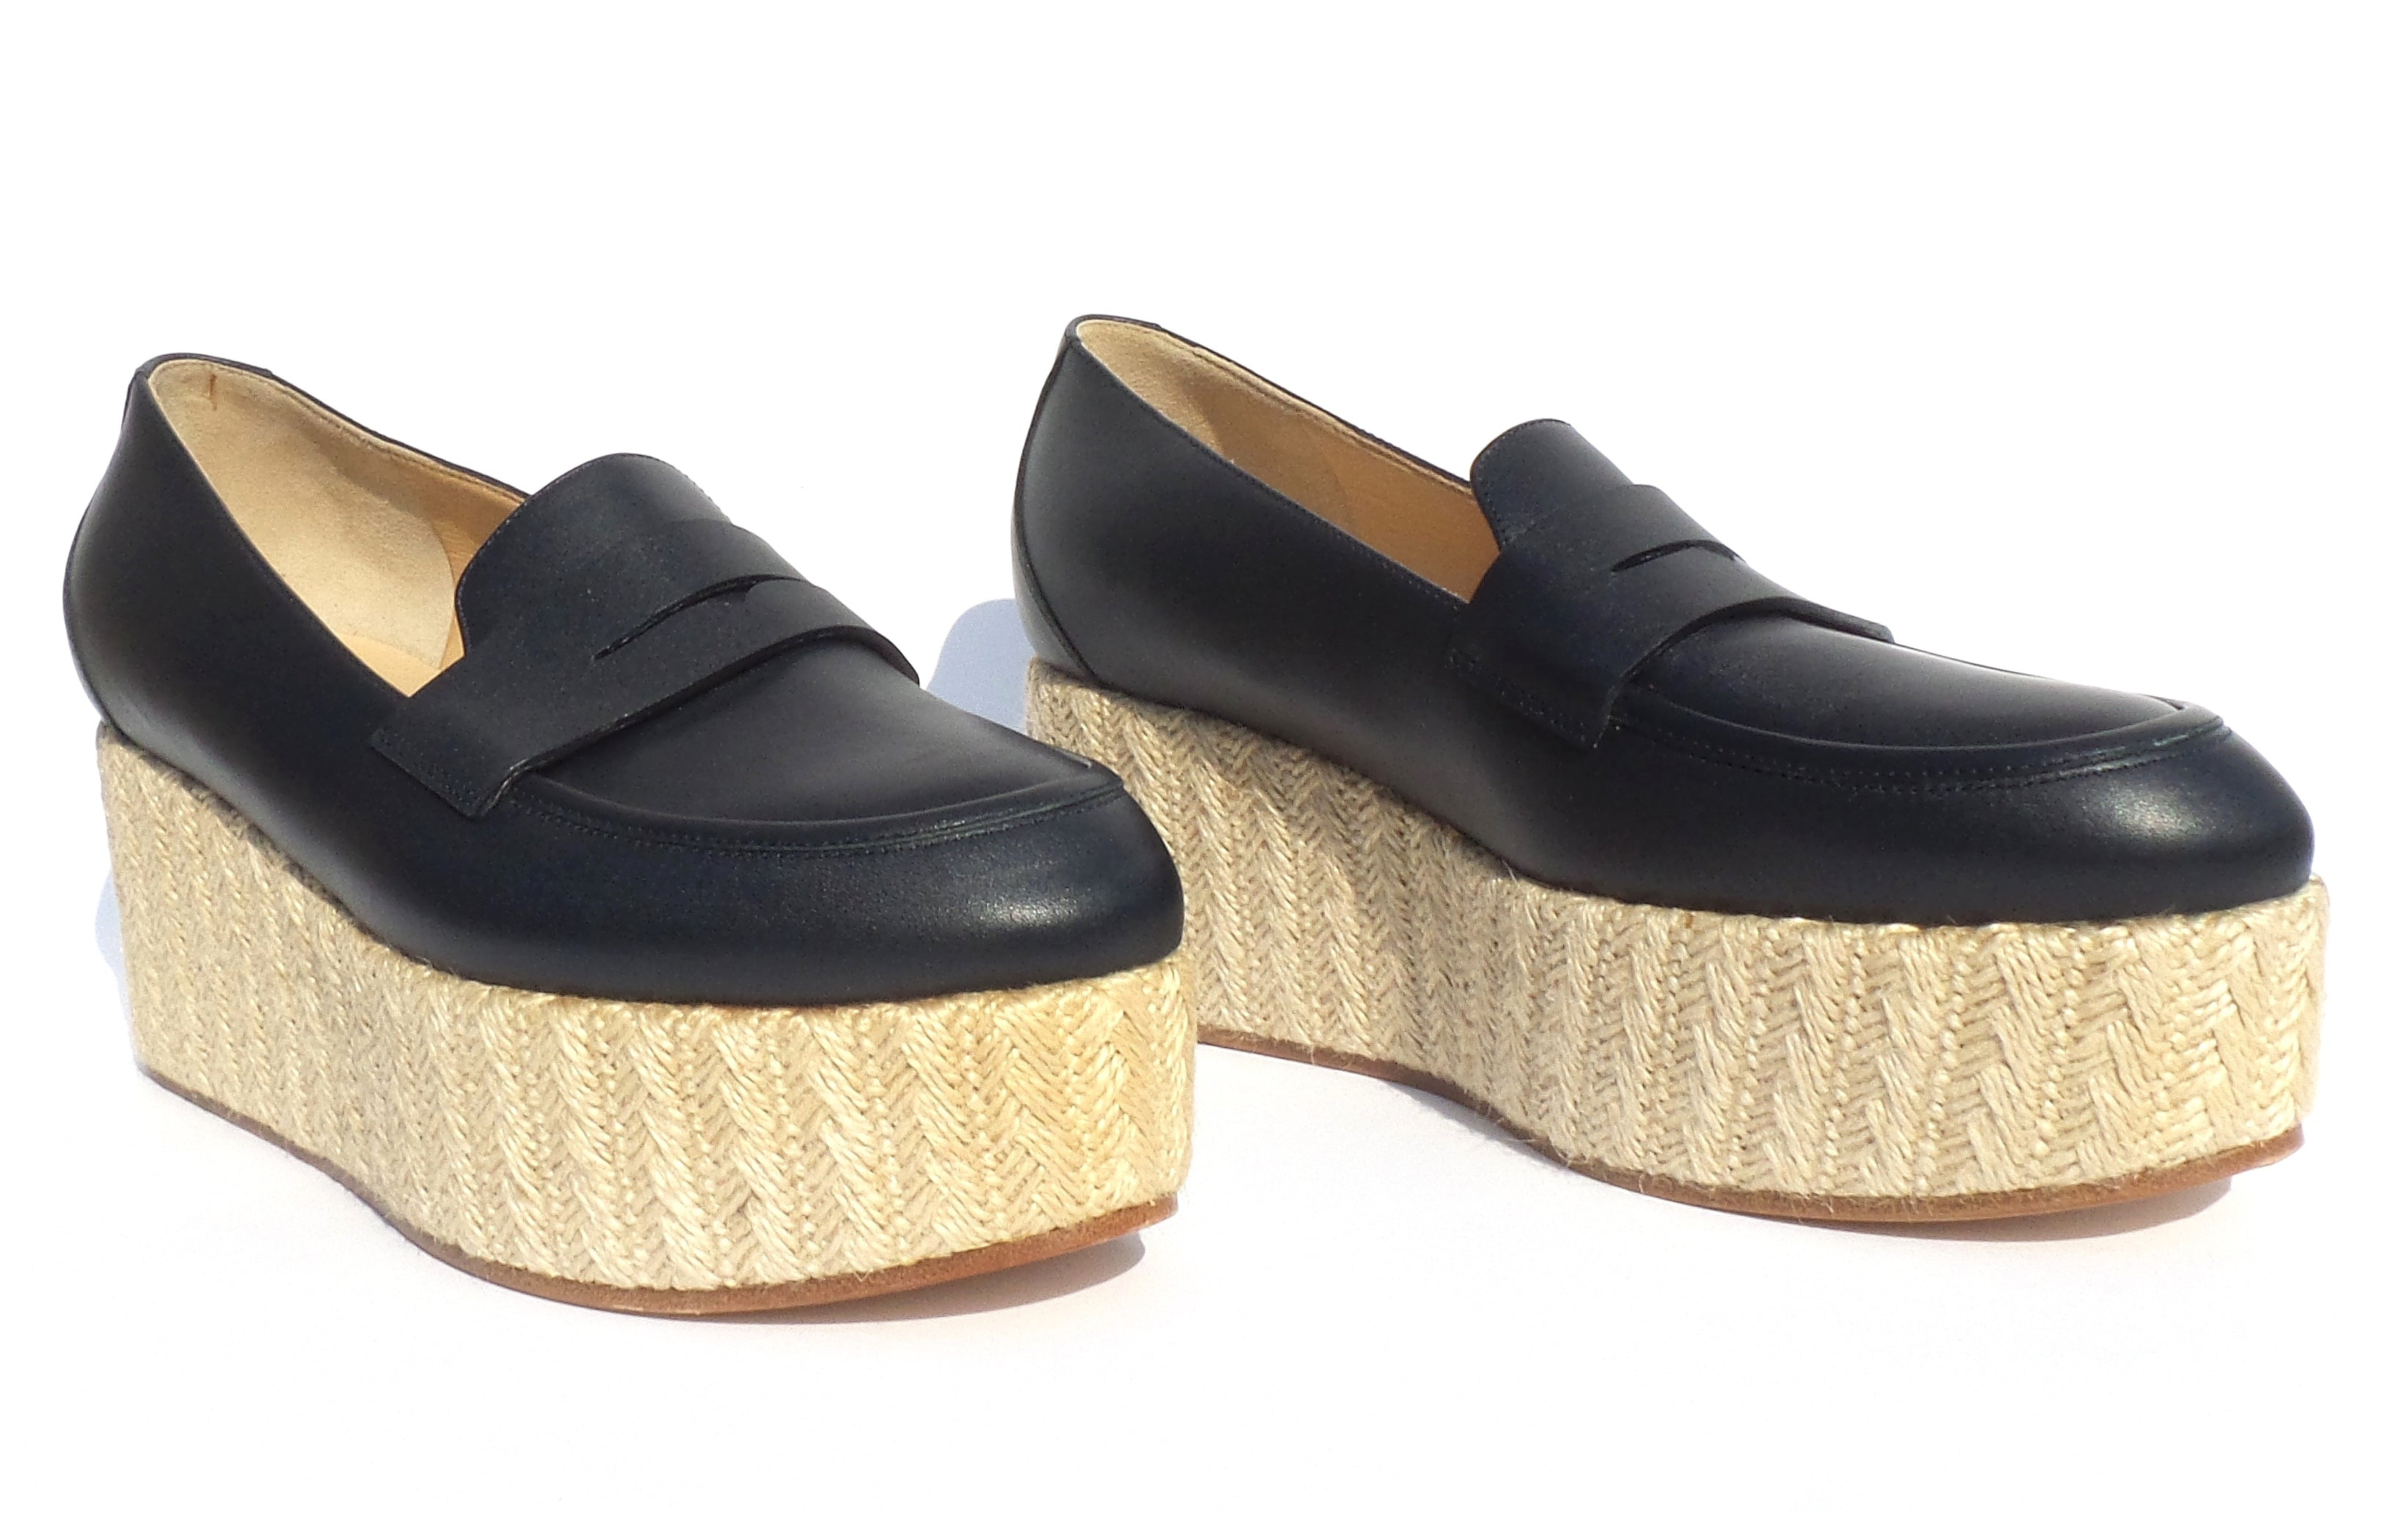 GABRIELA HEARST Brucco Midnight Navy Blue Leather Jute Platform Penny Loafers 37